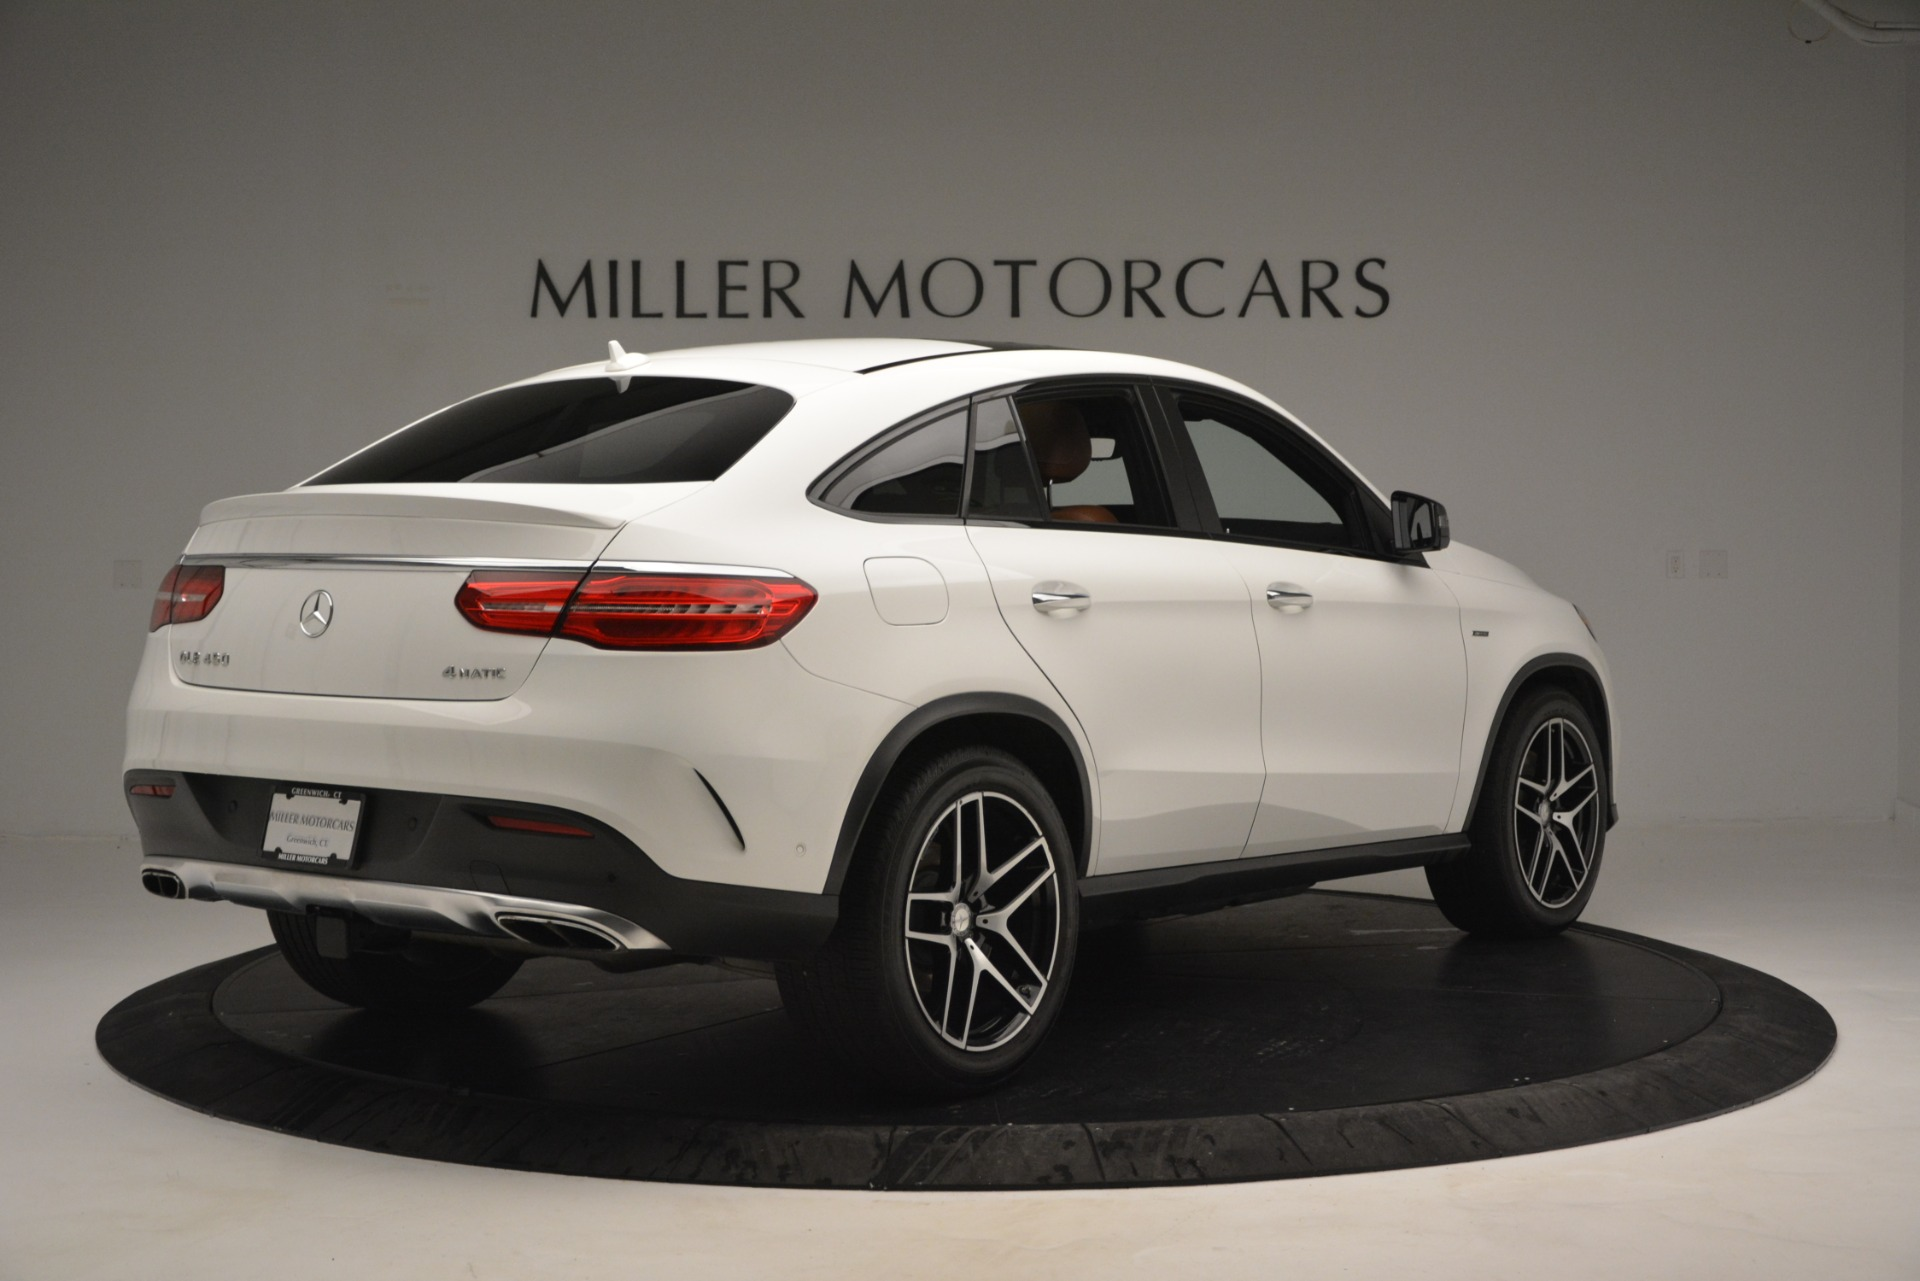 Used 2016 Mercedes-Benz GLE 450 AMG Coupe 4MATIC For Sale In Westport, CT 2787_p8